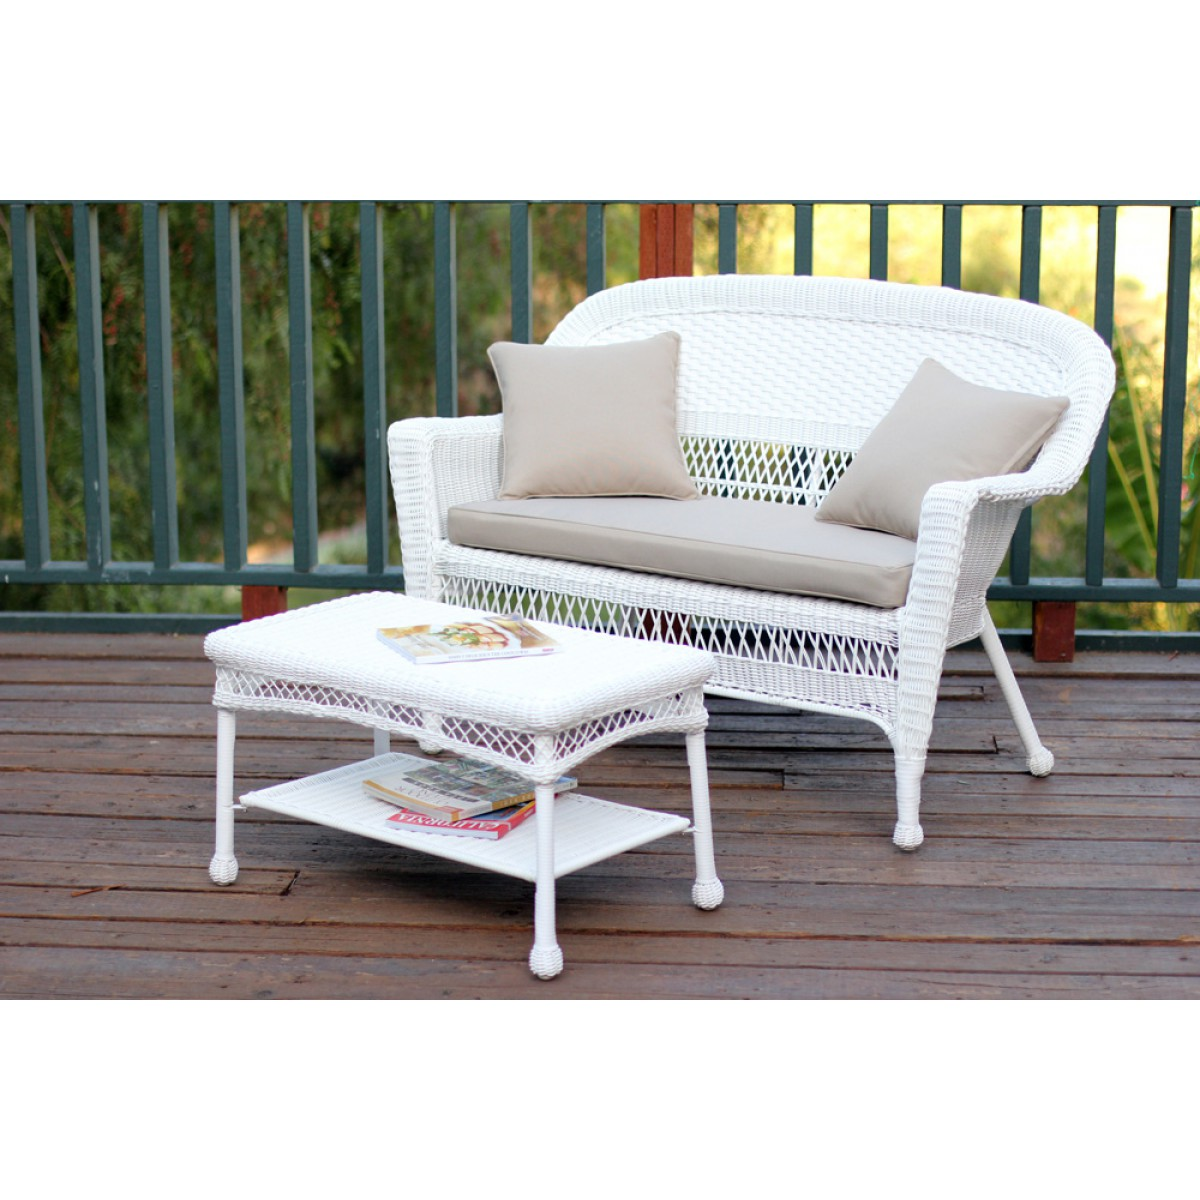 White wicker patio love seat and coffee table set with tan cushion White wicker coffee table